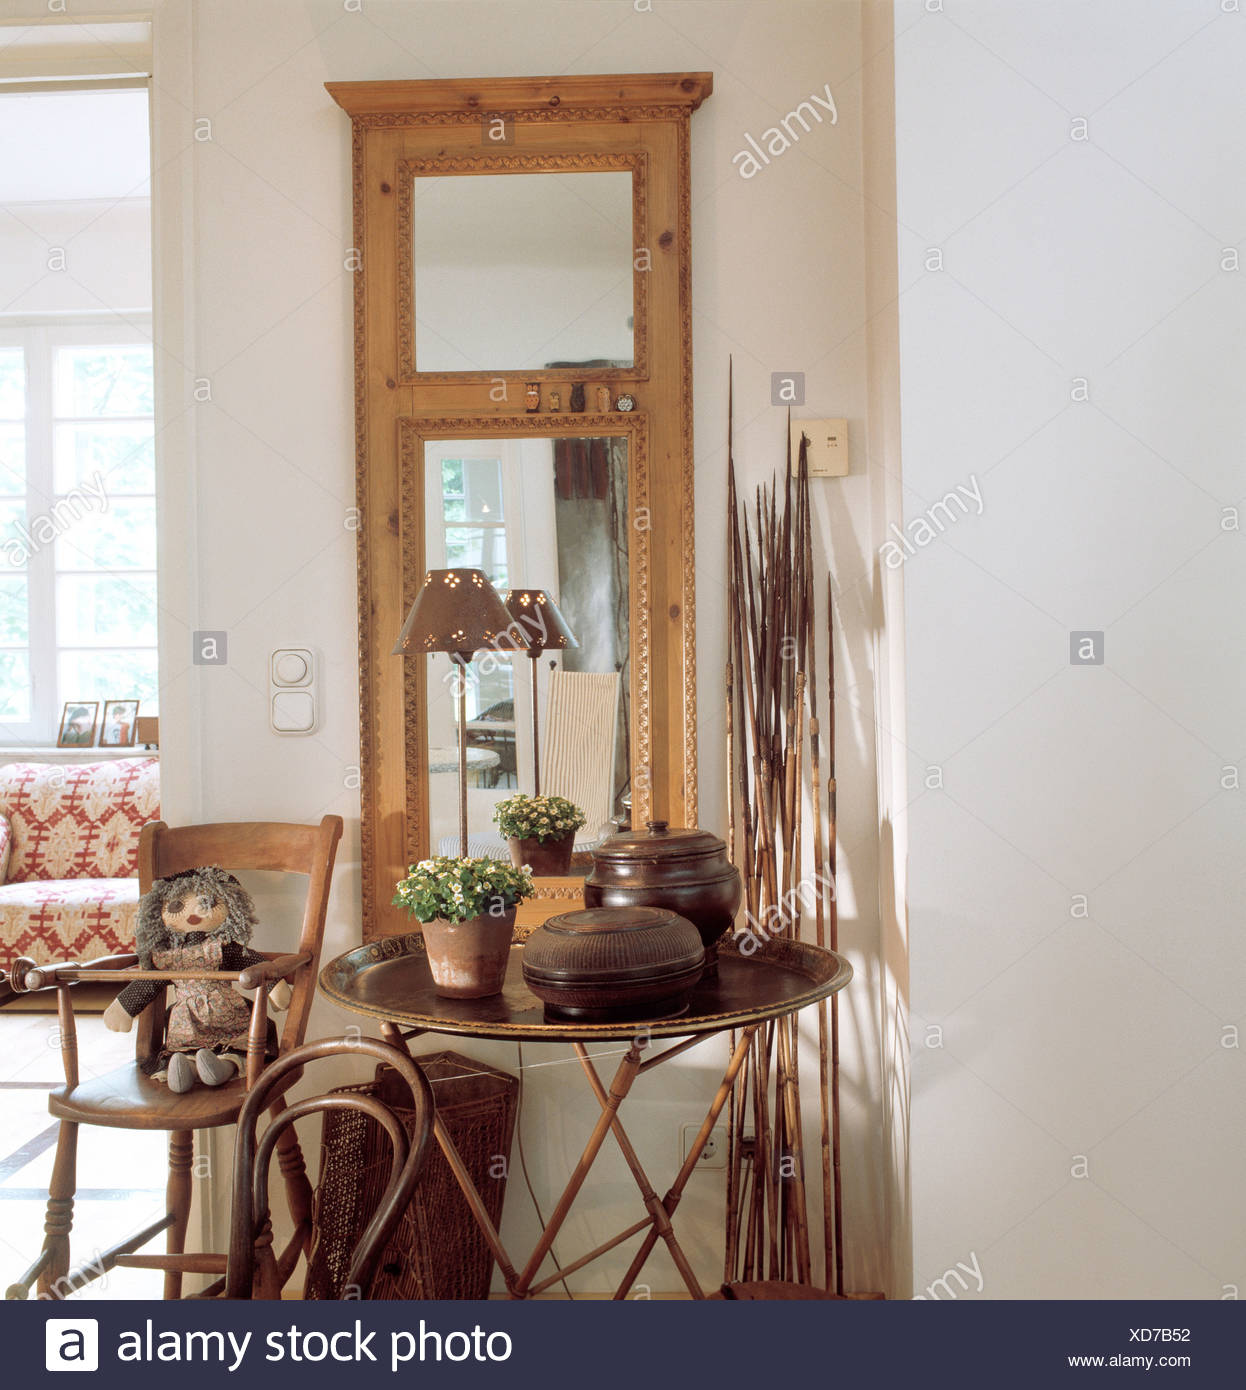 REAL HOMESDetail of hallway, with wood framed mirror, small table and chair, high chair, small lamp and decorative twigs - Stock Image